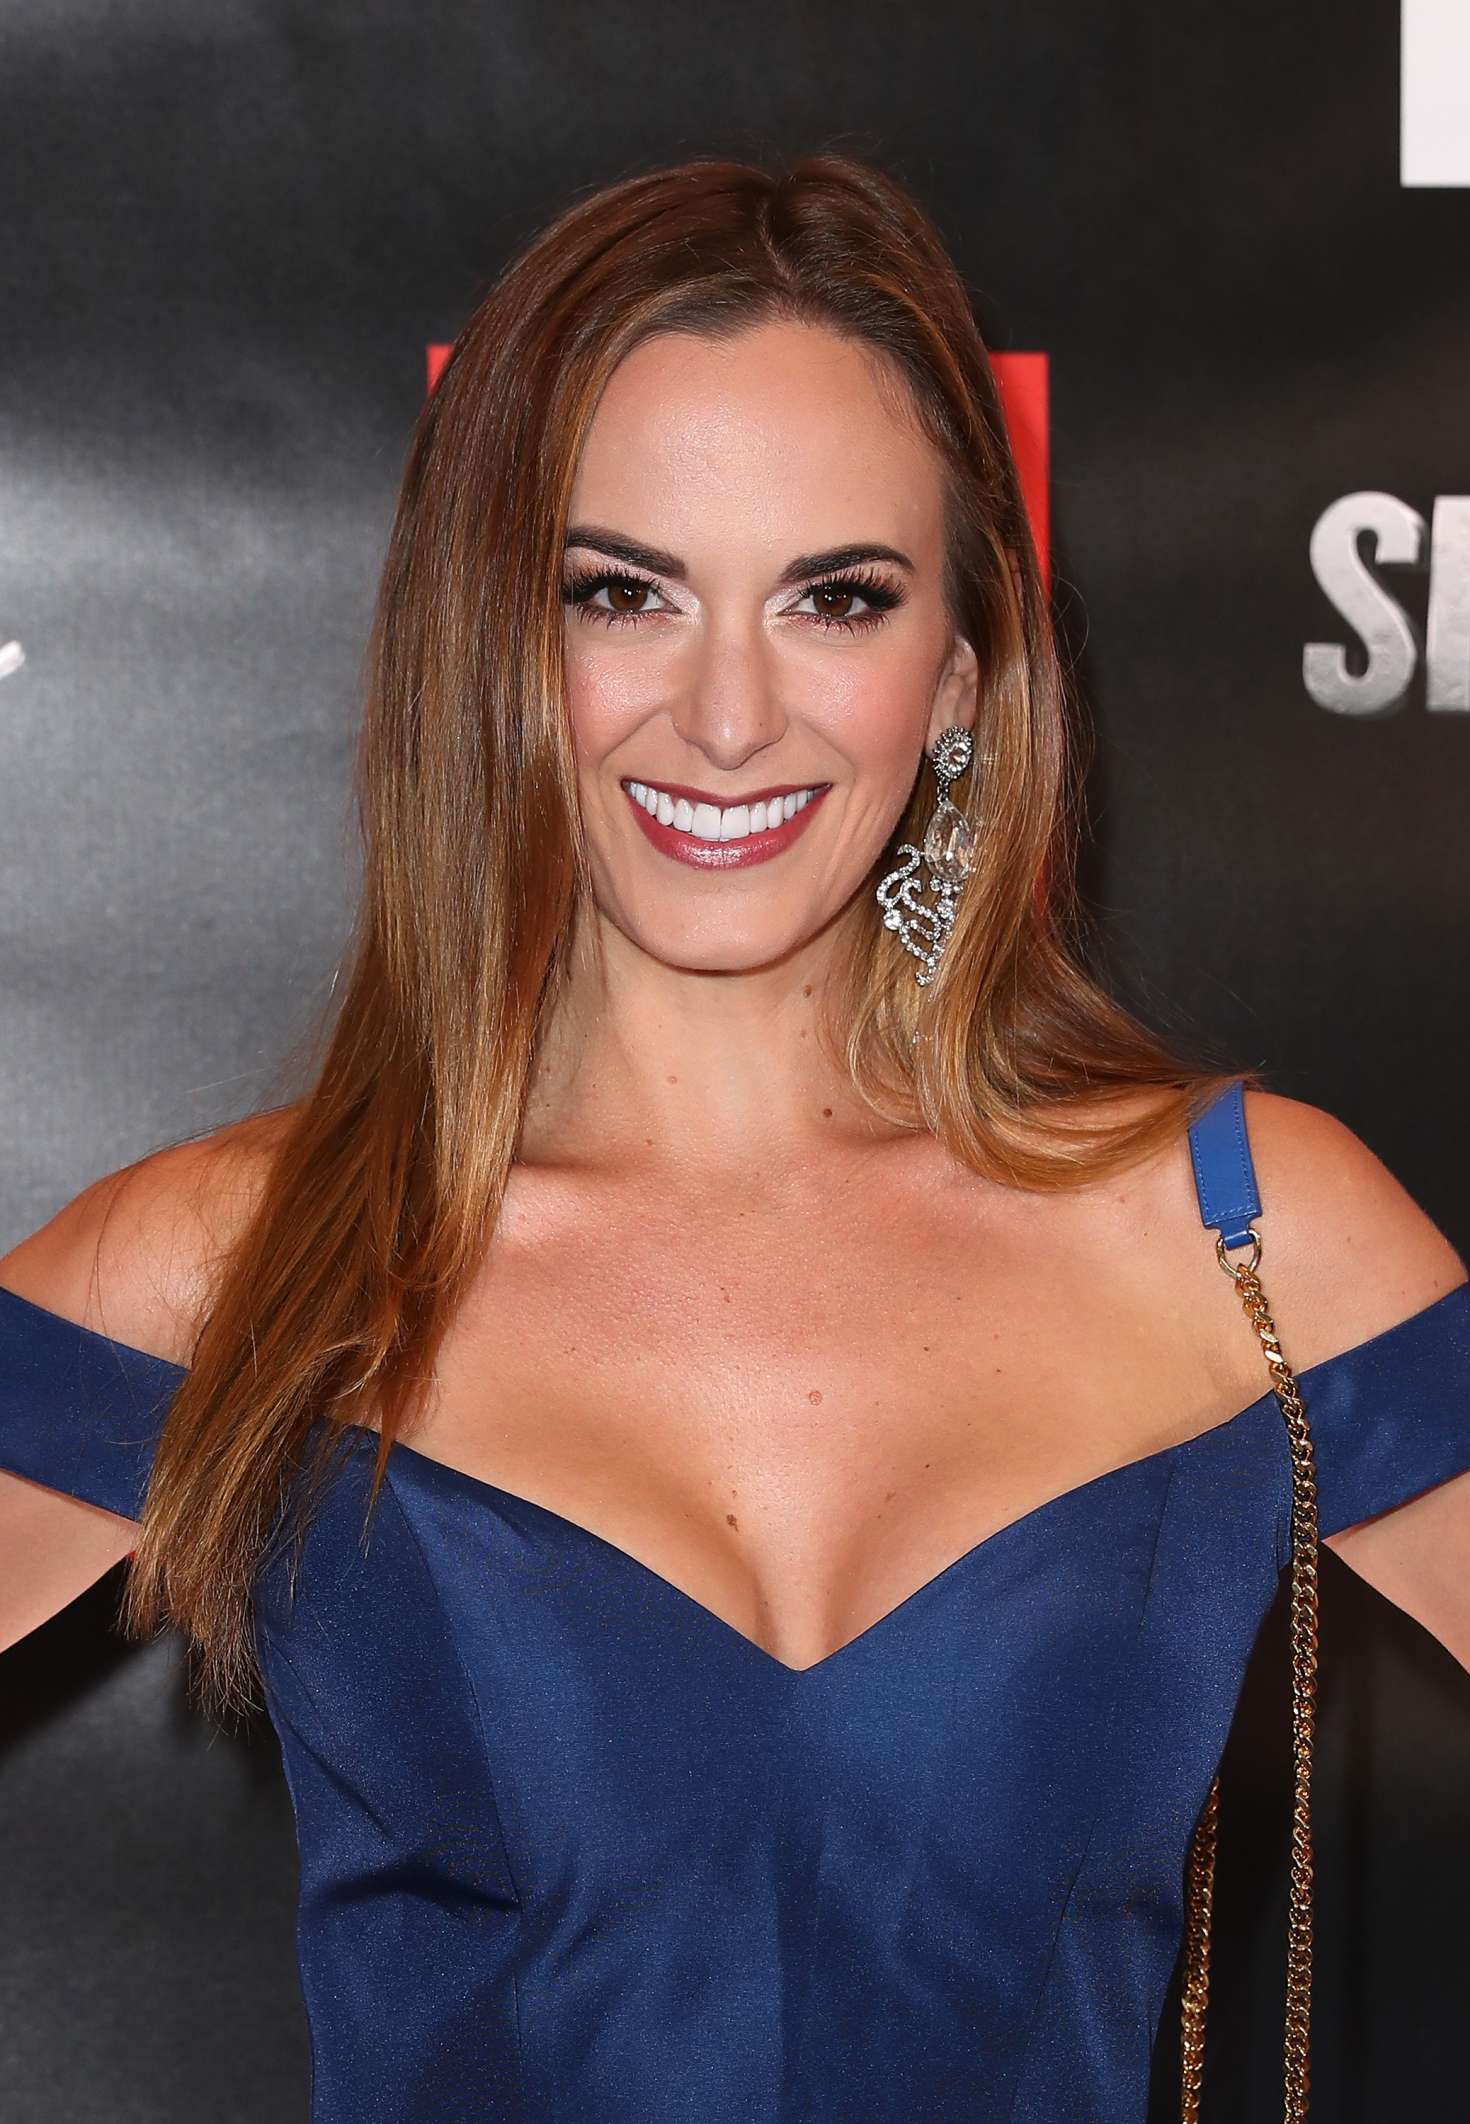 Jena Sims nudes (96 images) Leaked, Facebook, panties